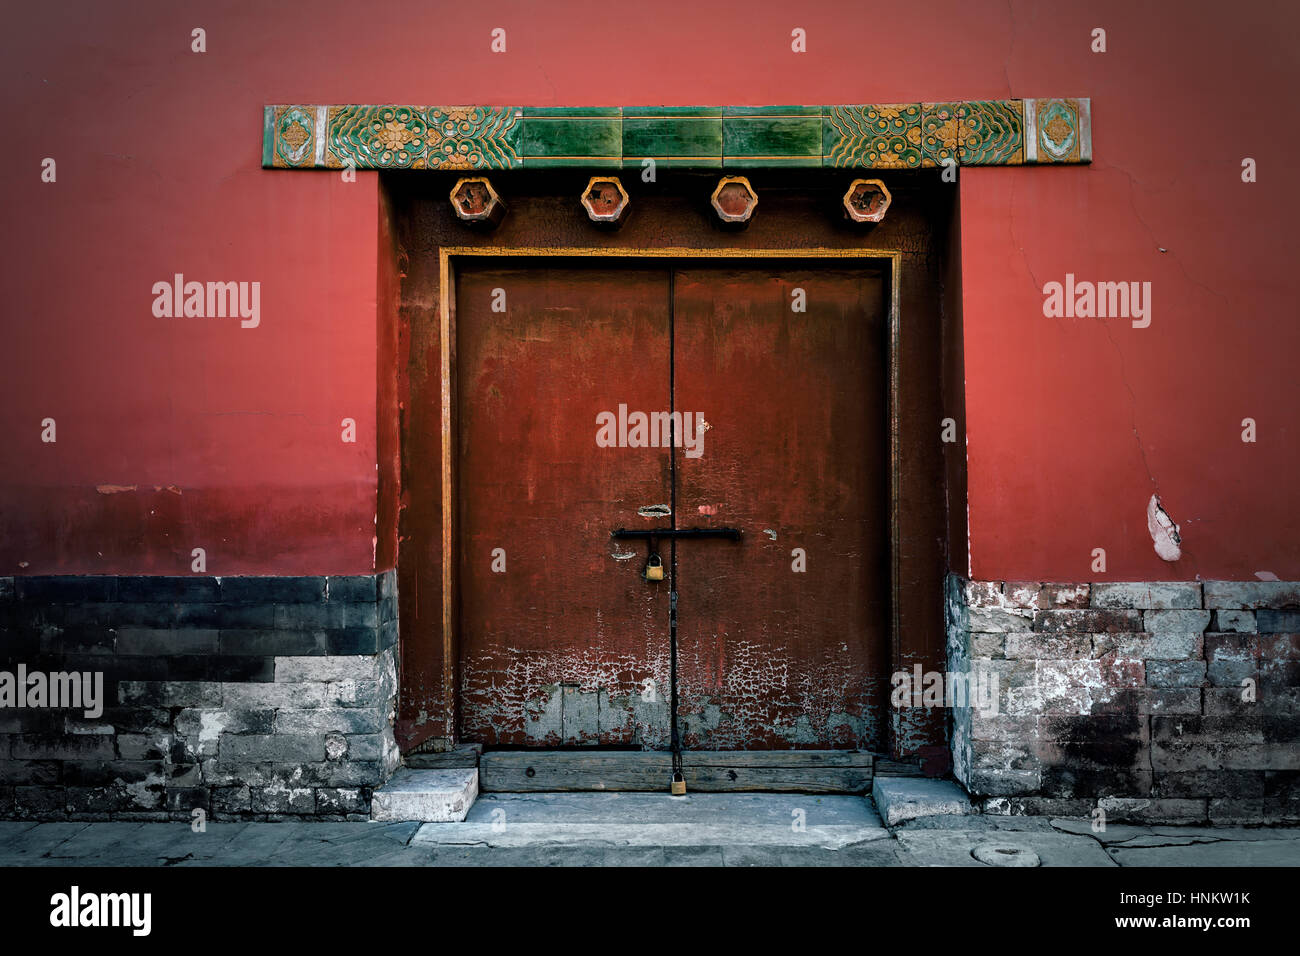 Door at the Forbidden City Was the Chinese Imperial Palace from the Ming dynasty to the end of the Qing dynasty. Beijing China Photo taken on 2nd D & Door at the Forbidden City Was the Chinese Imperial Palace from the ...